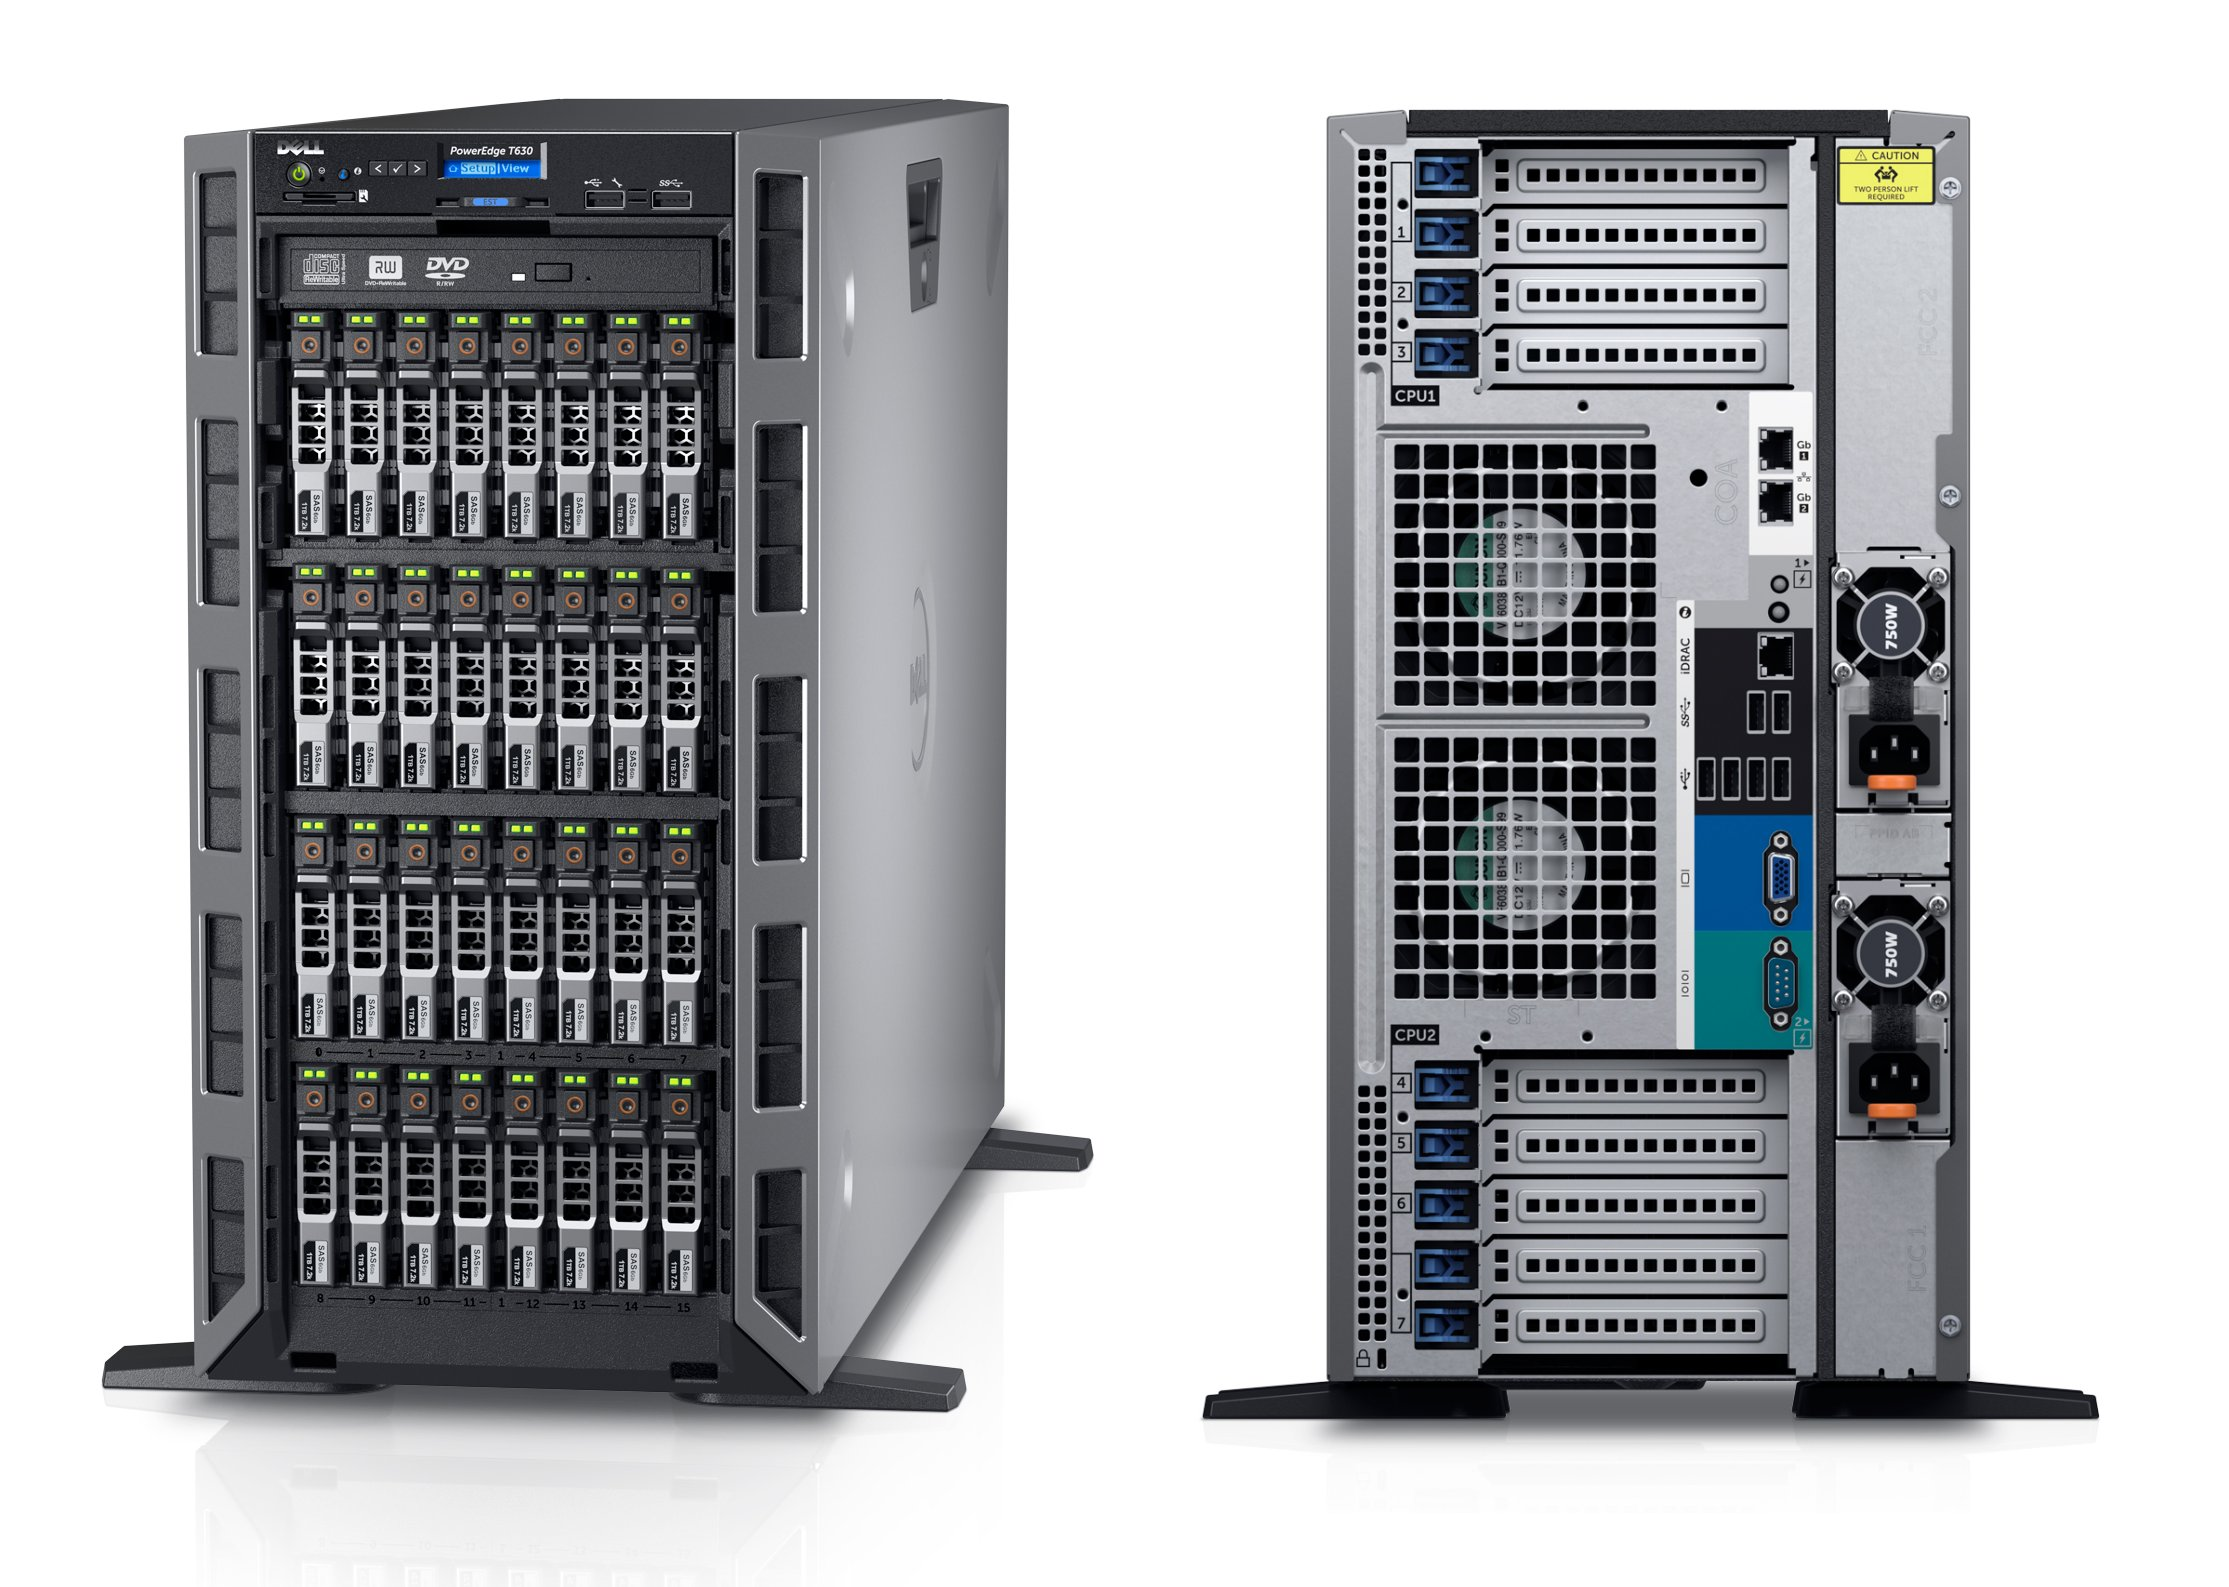 MÁY CHỦ DELL POWEREDGE T630 INTEL® XEON® E5-2609 V3 1.9GHZ